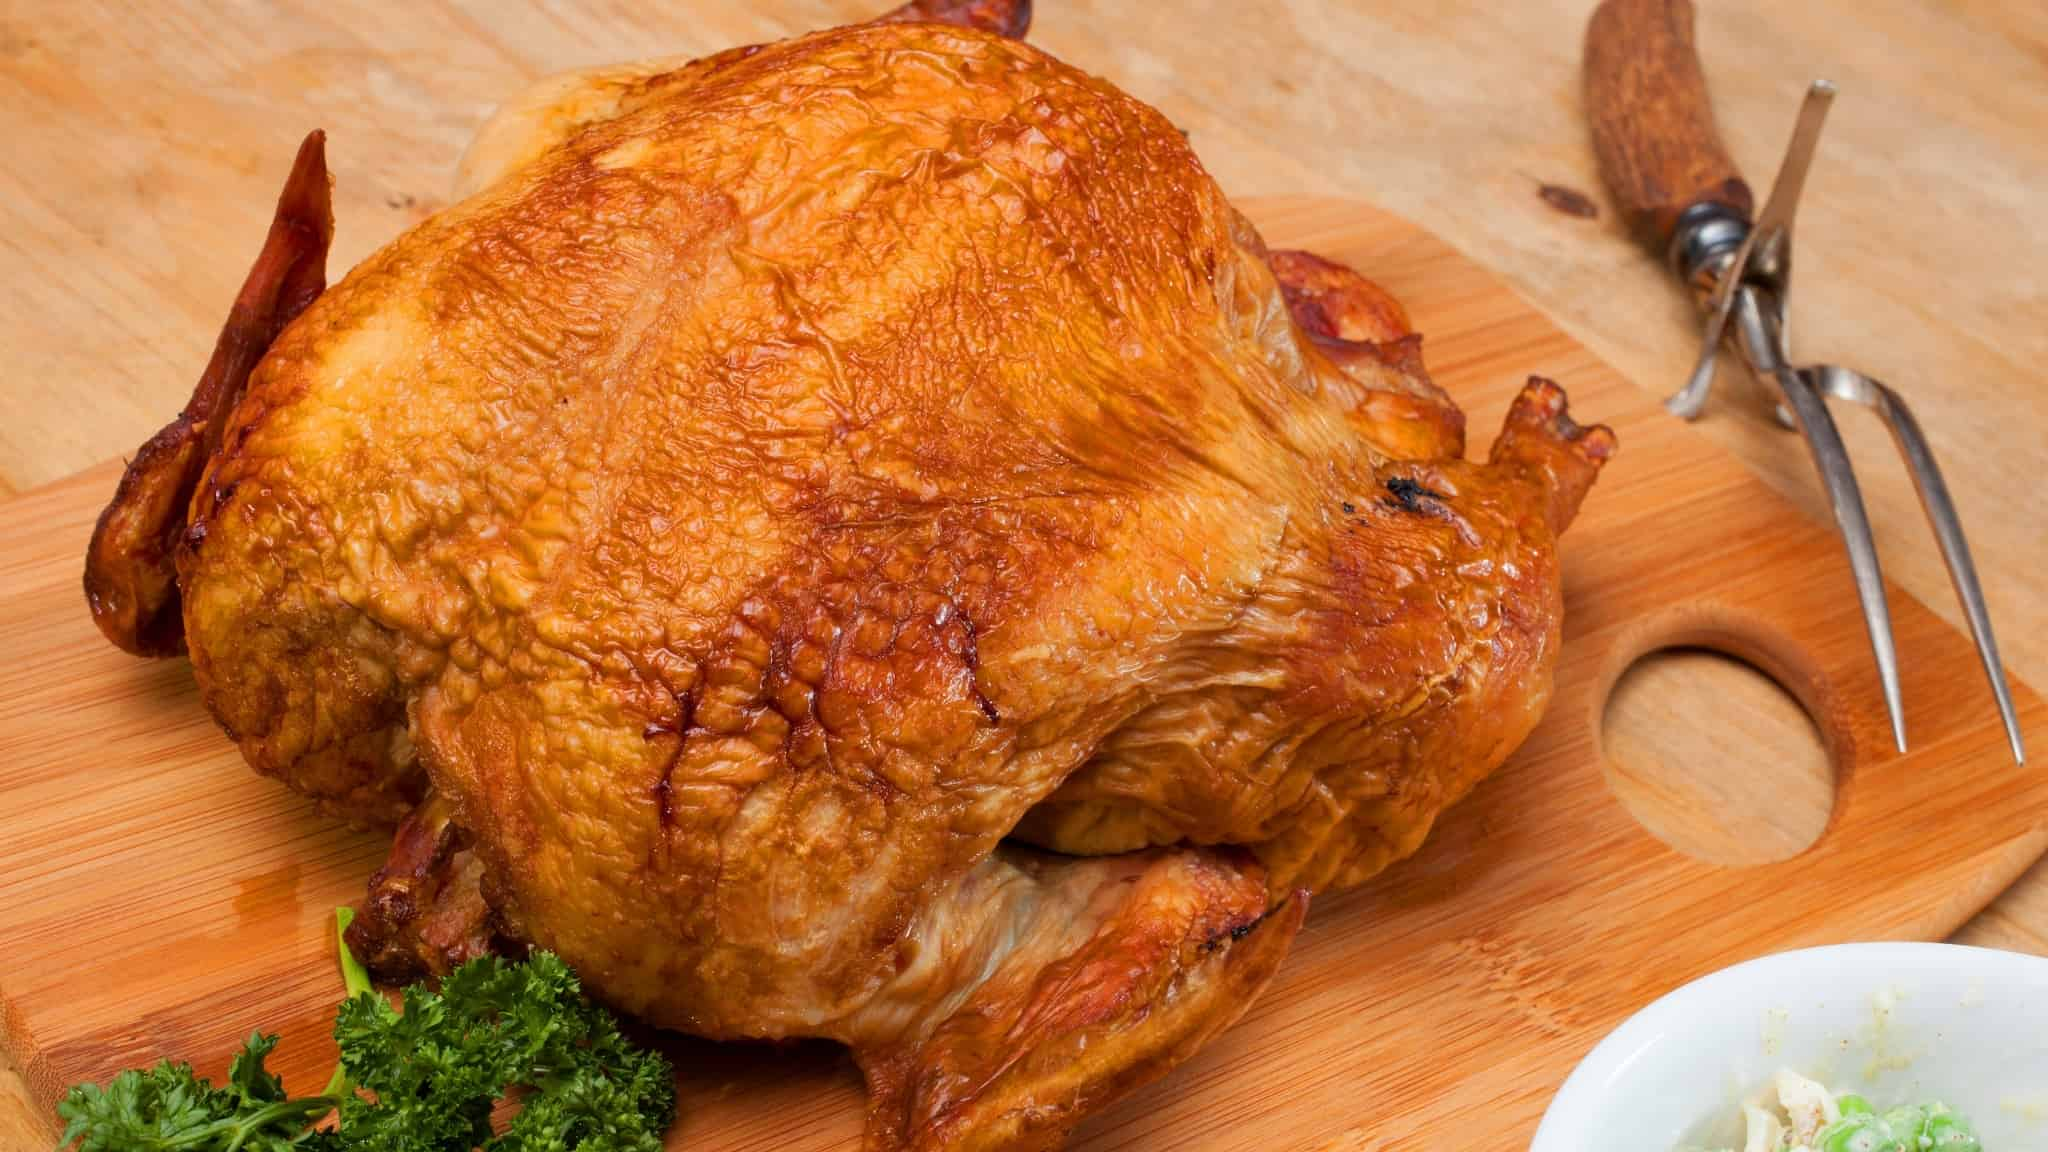 Best wood for smoking poultry: Complete guide +pairing tips